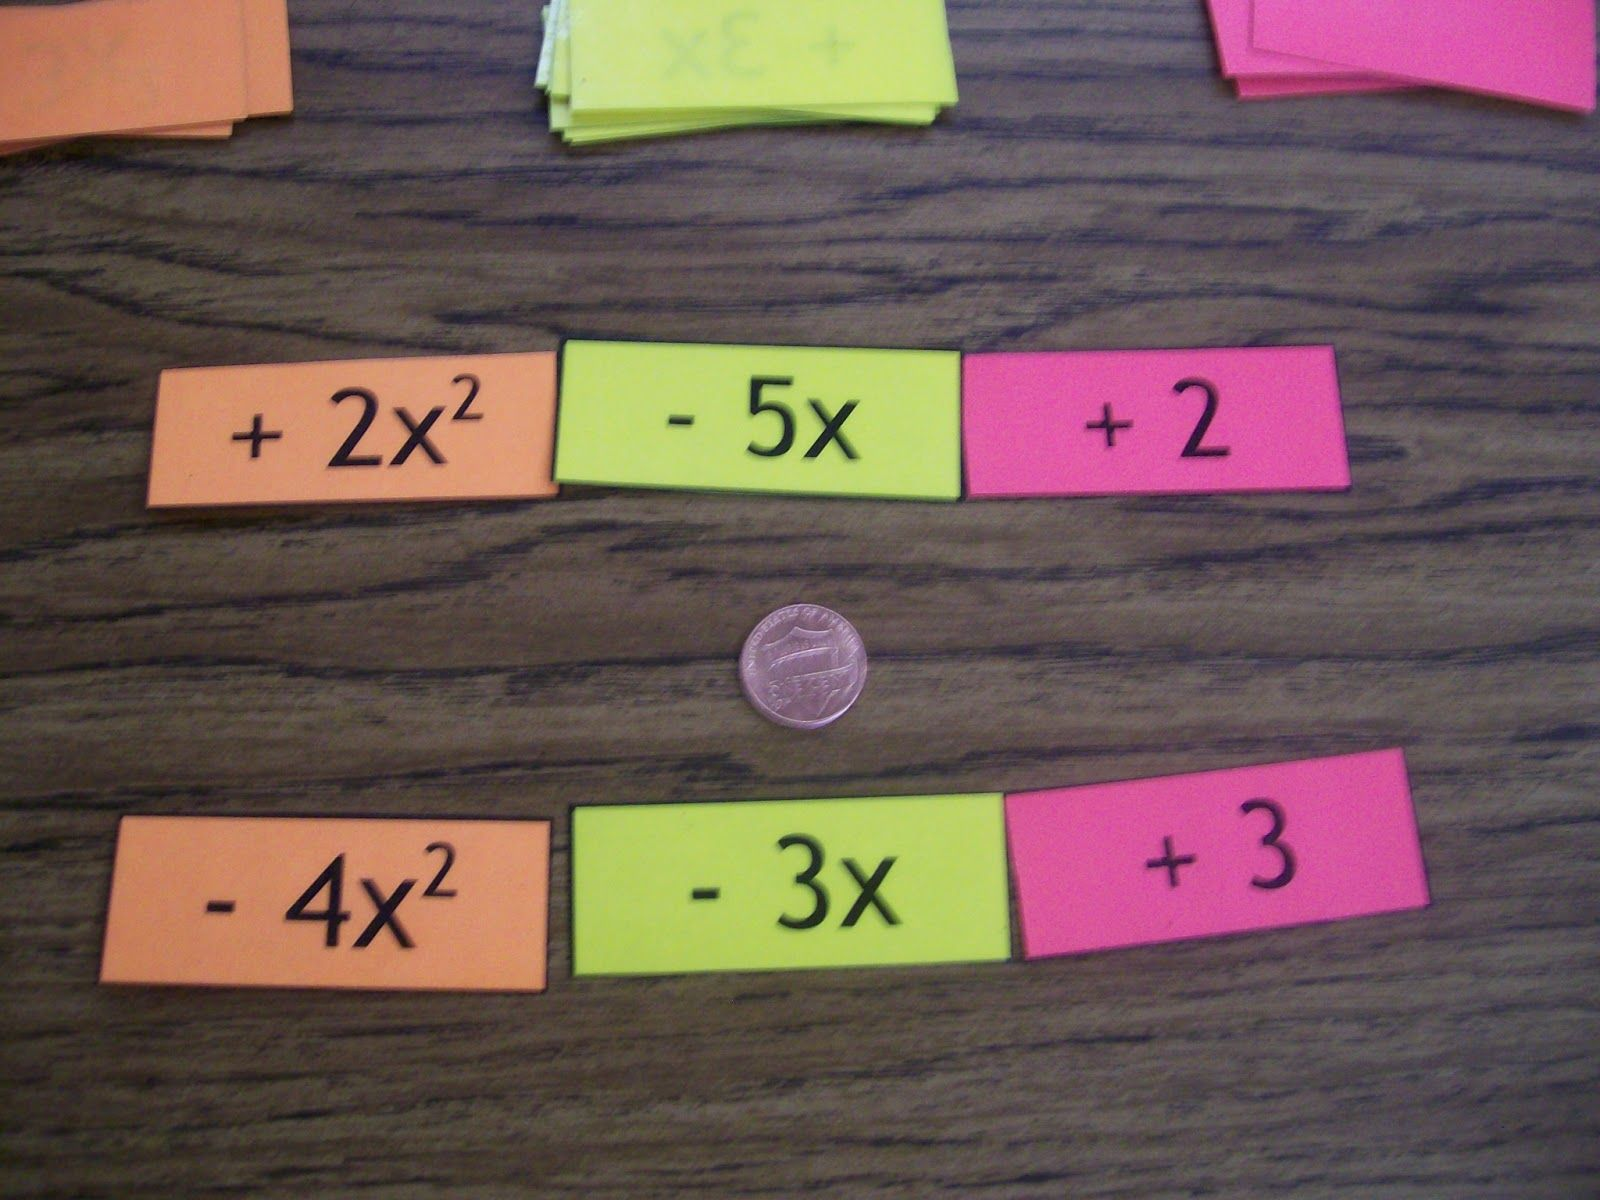 Fun Activity For Finding The Sum Difference Of Polynomials Math Love Adding And Subtracting Polynomials Polynomials Activity Teaching Algebra Lesson adding polynomial expressions